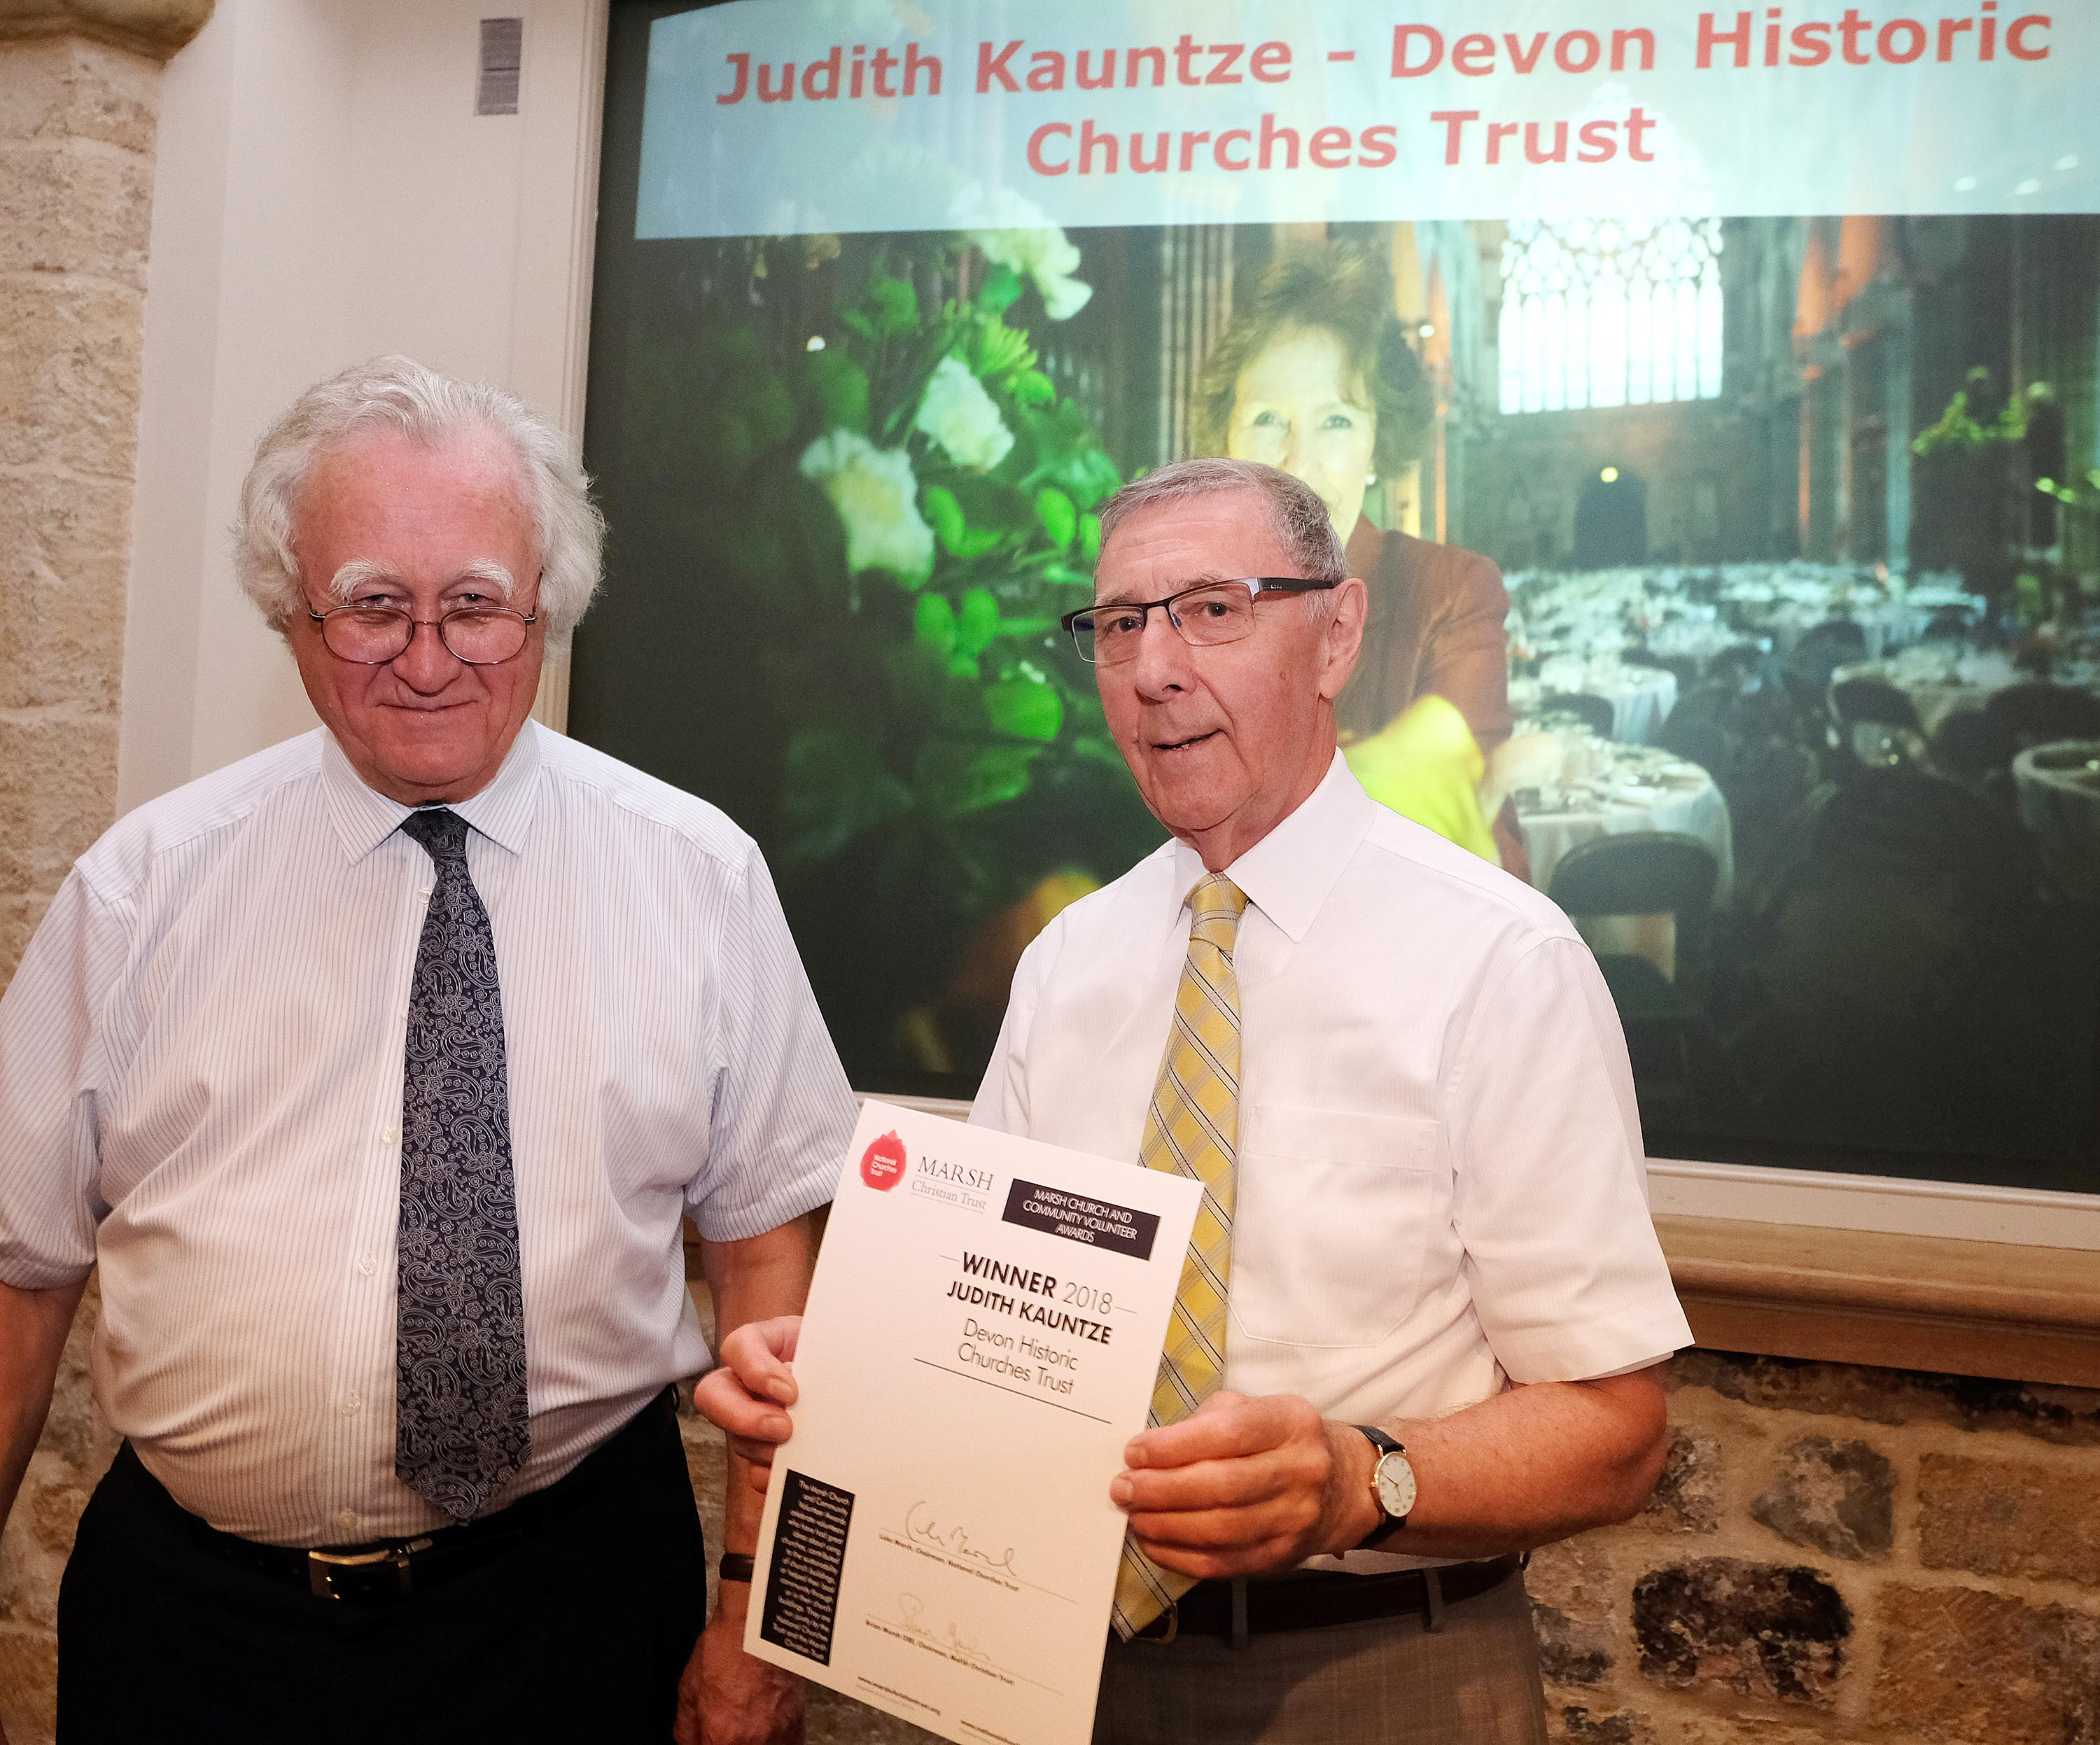 David Knowles representing Judith Kauntze with Brian Marsh from Marsh Christian Trust (c Mike Swift)